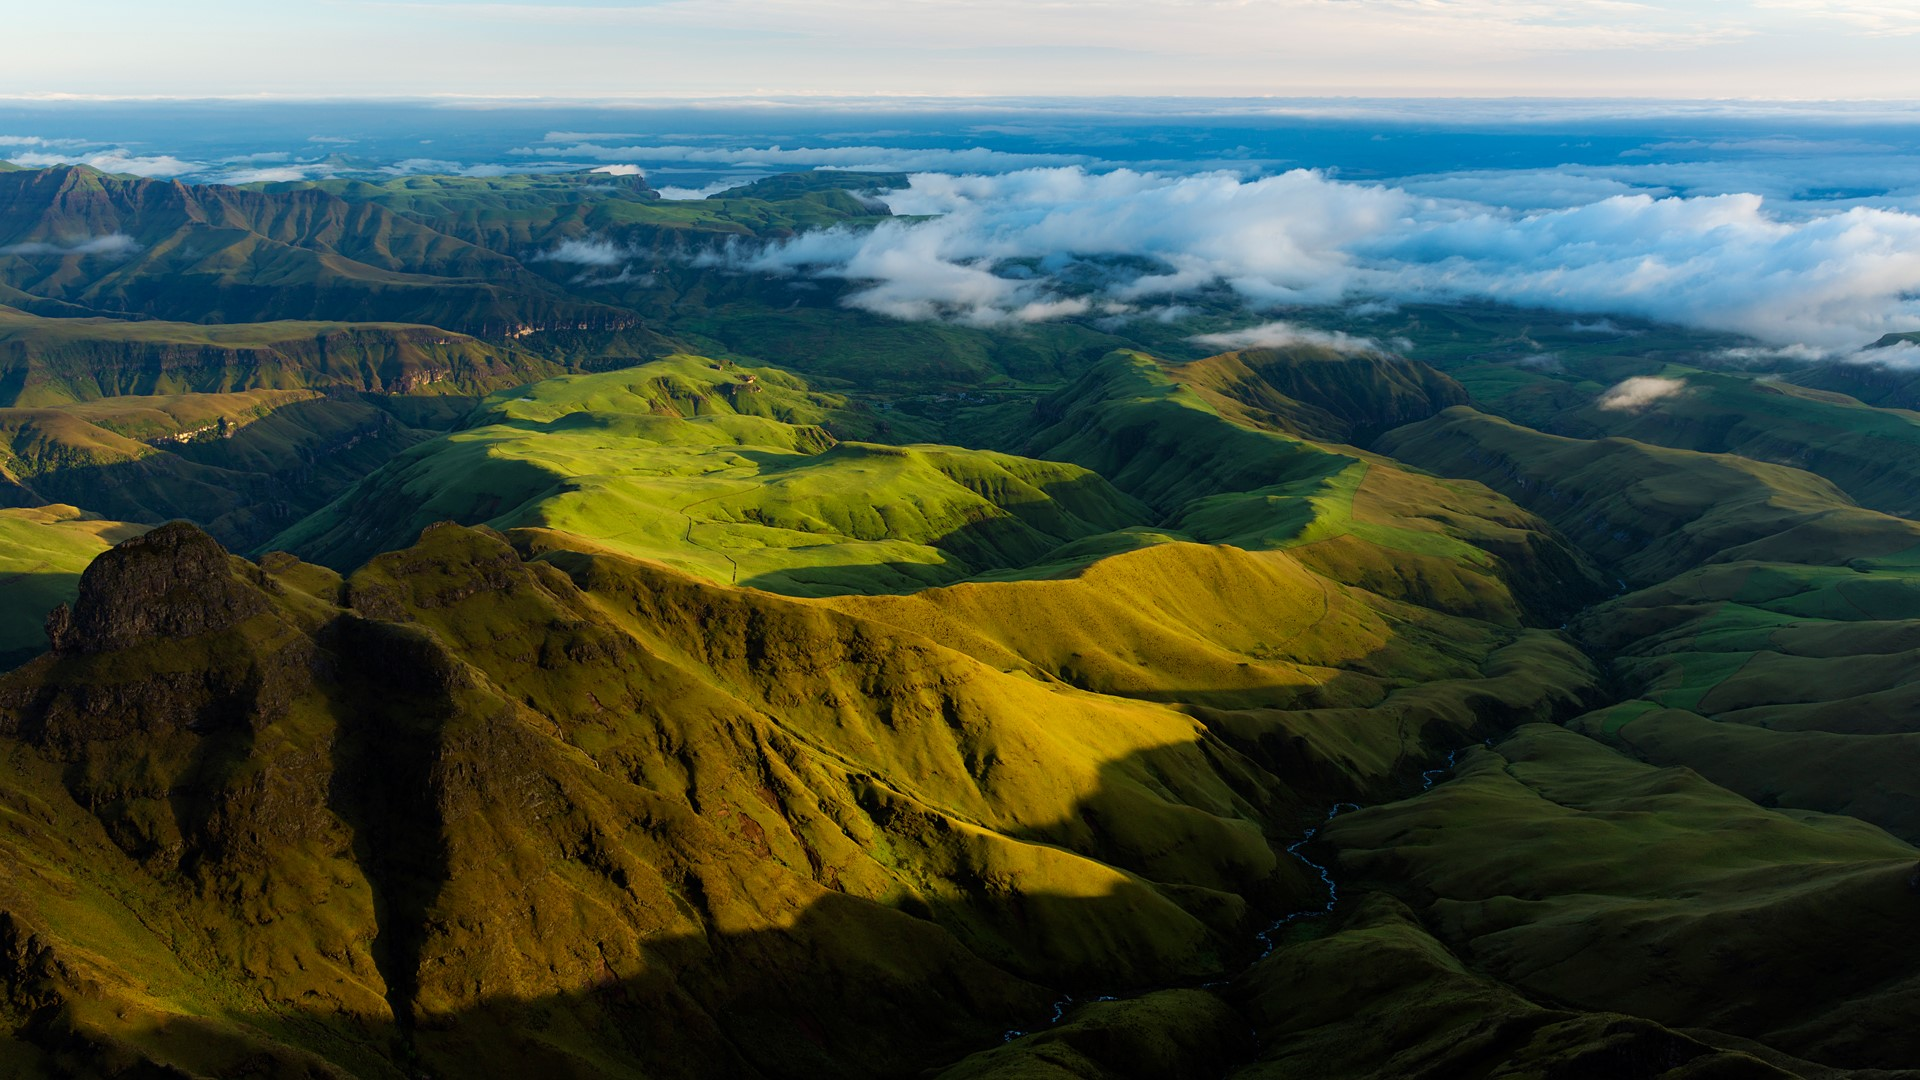 Guided hikes in south africa. Morning Light On The Hills Cathedral Peak Region Drakensberg South Africa Windows 10 Spotlight Images